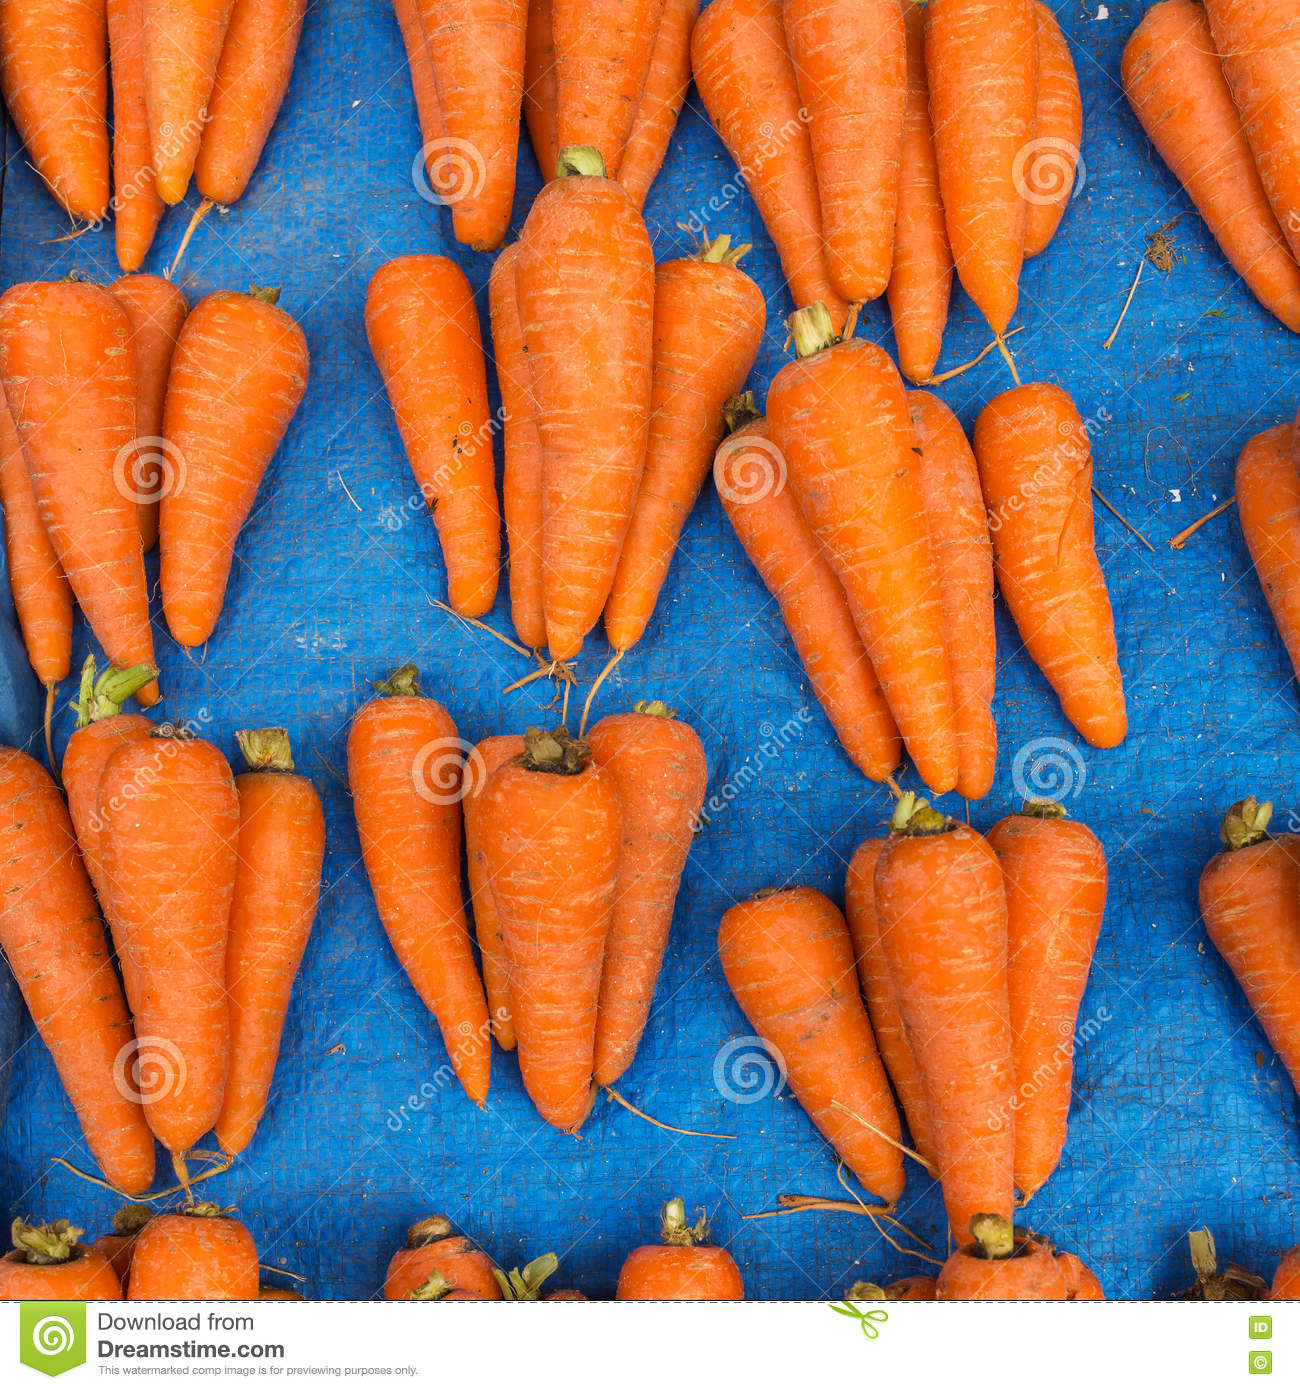 Fresh carrot batches on the market